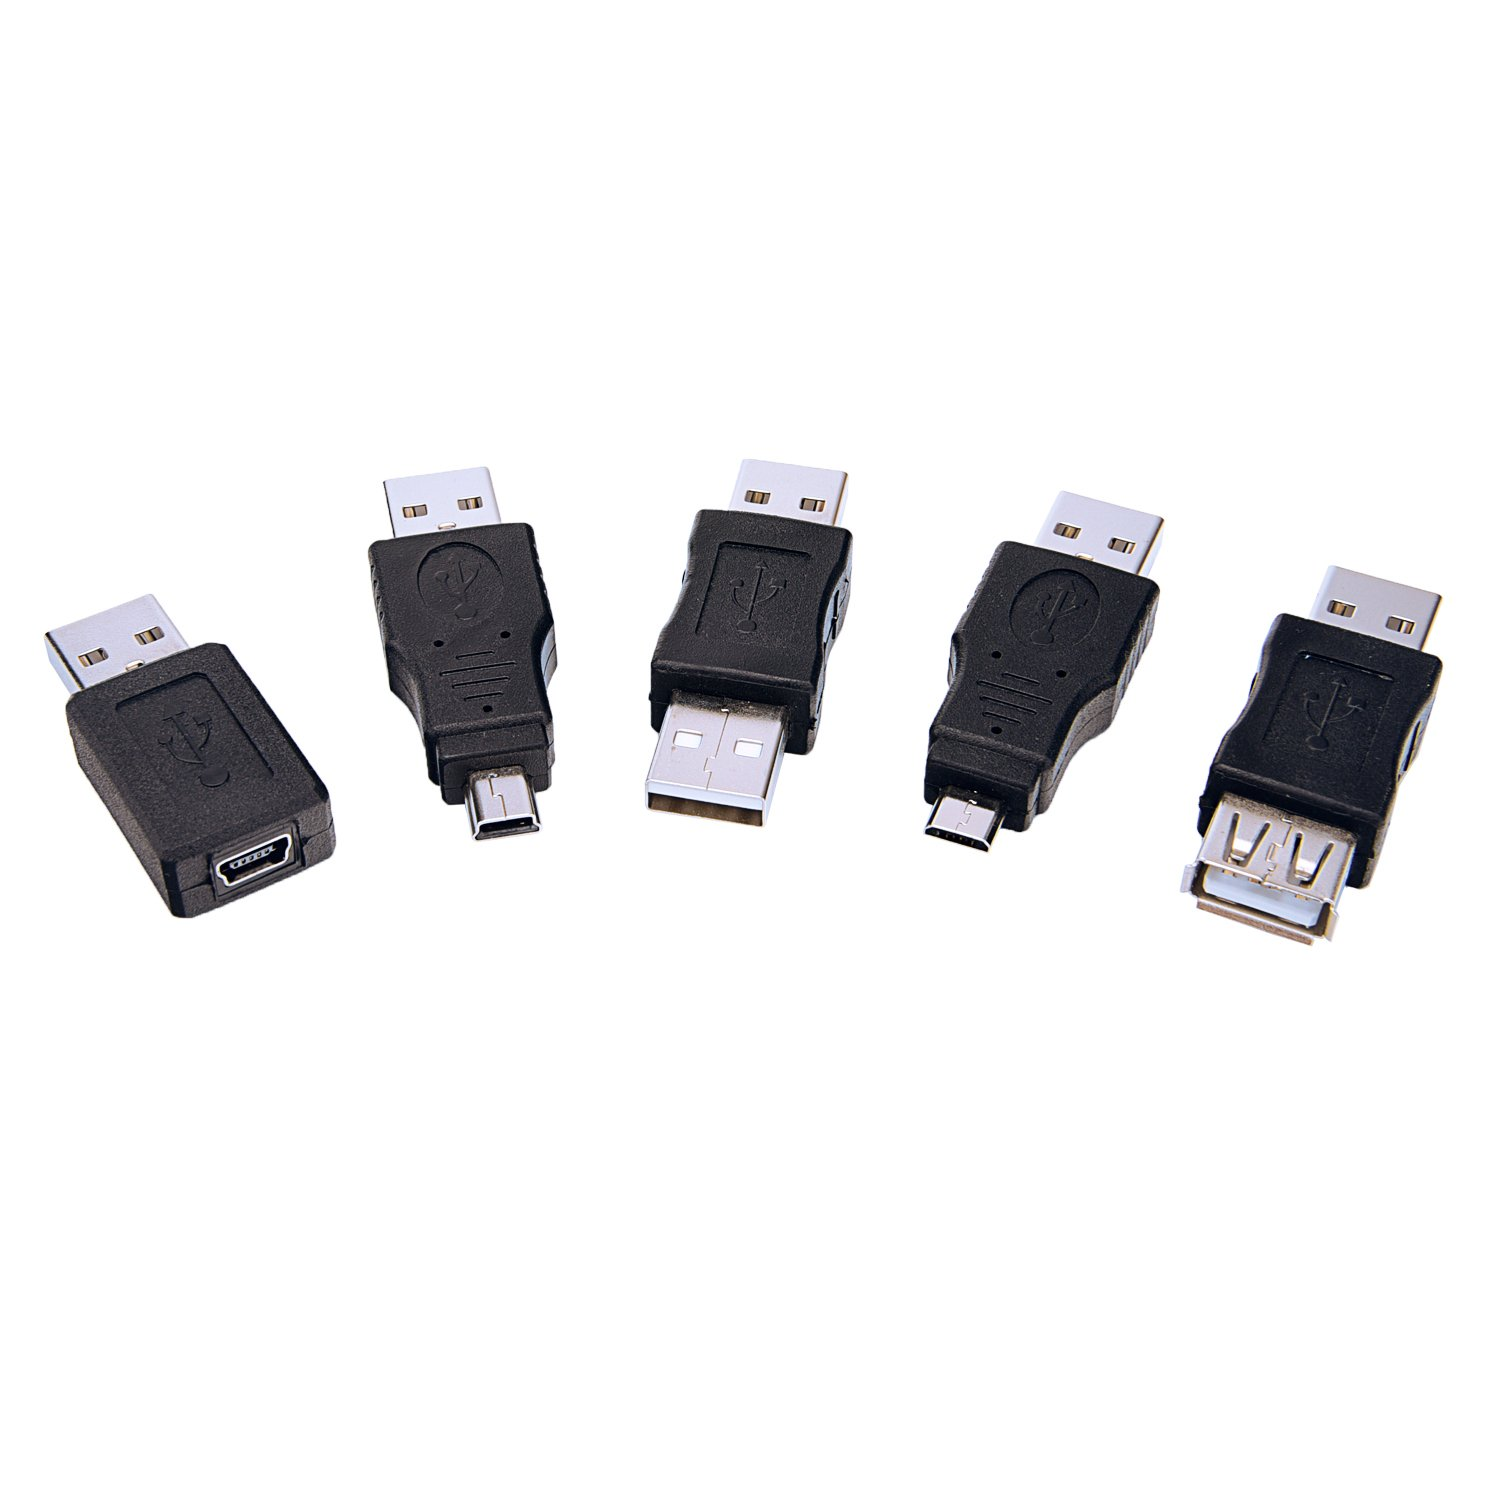 Sunmns OTG USB Mini Micro Male to Female Connector Adapter Converter 13 Pieces Support Data Sync and Charging